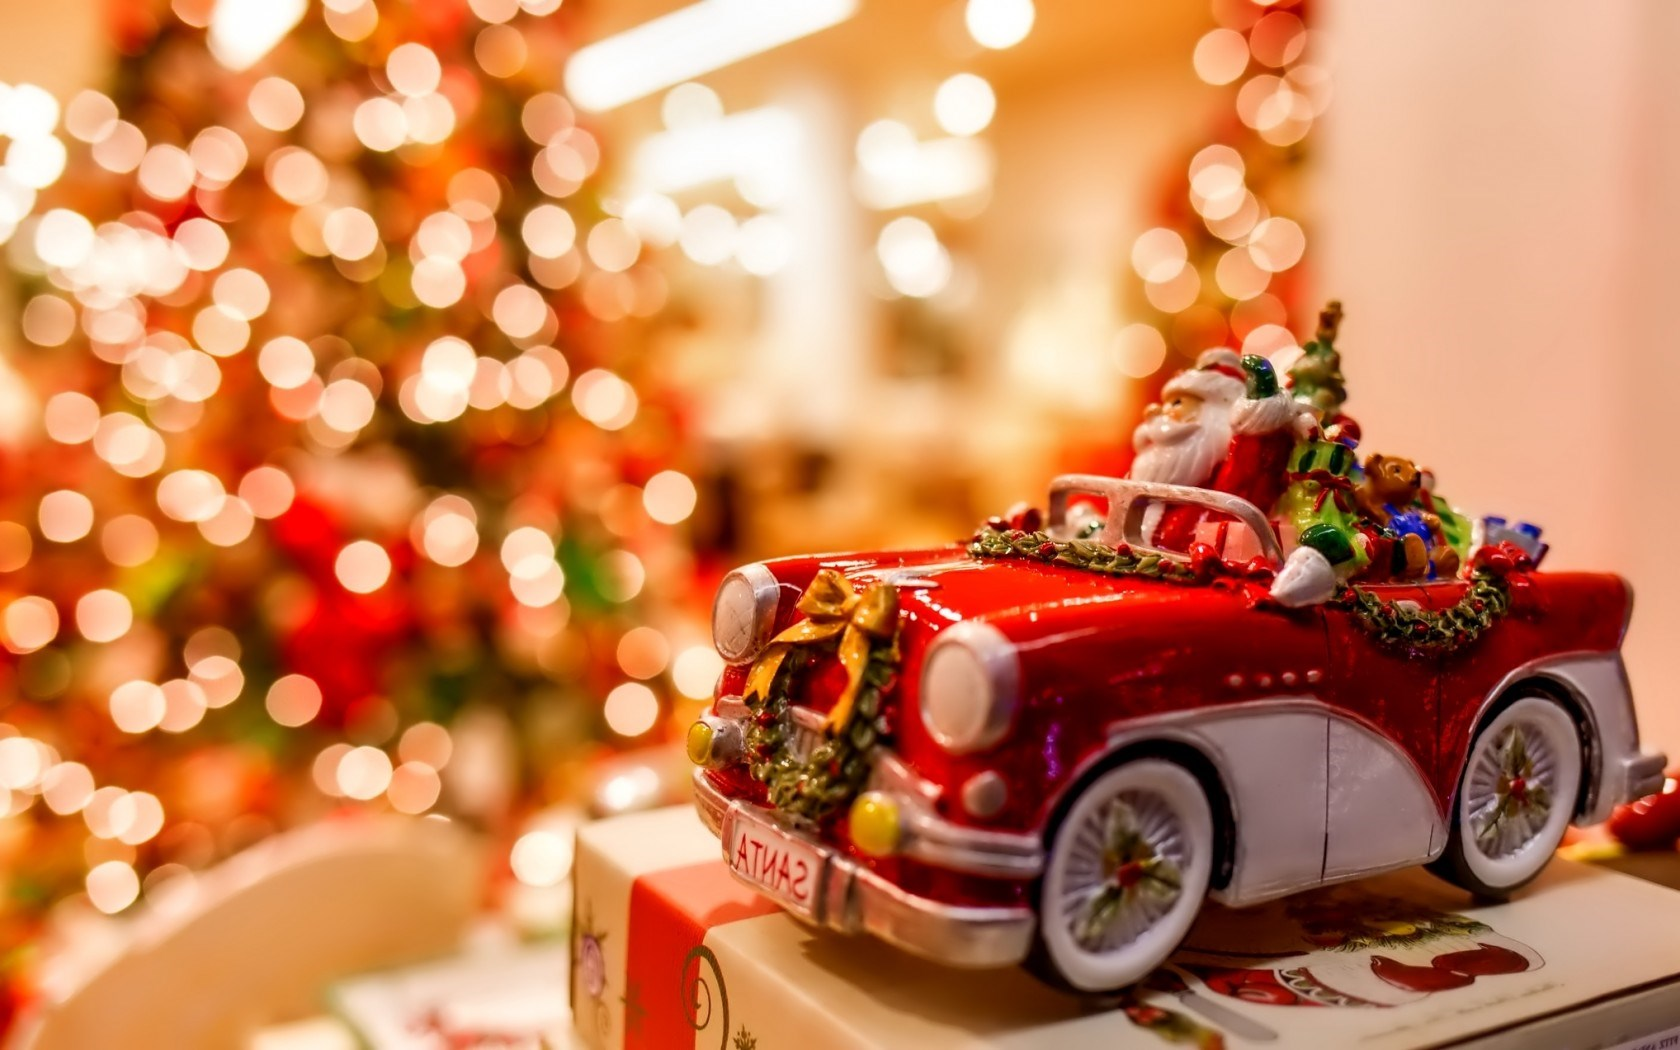 christmas-tree-lights-santa-claus-car-toy-new-year-1